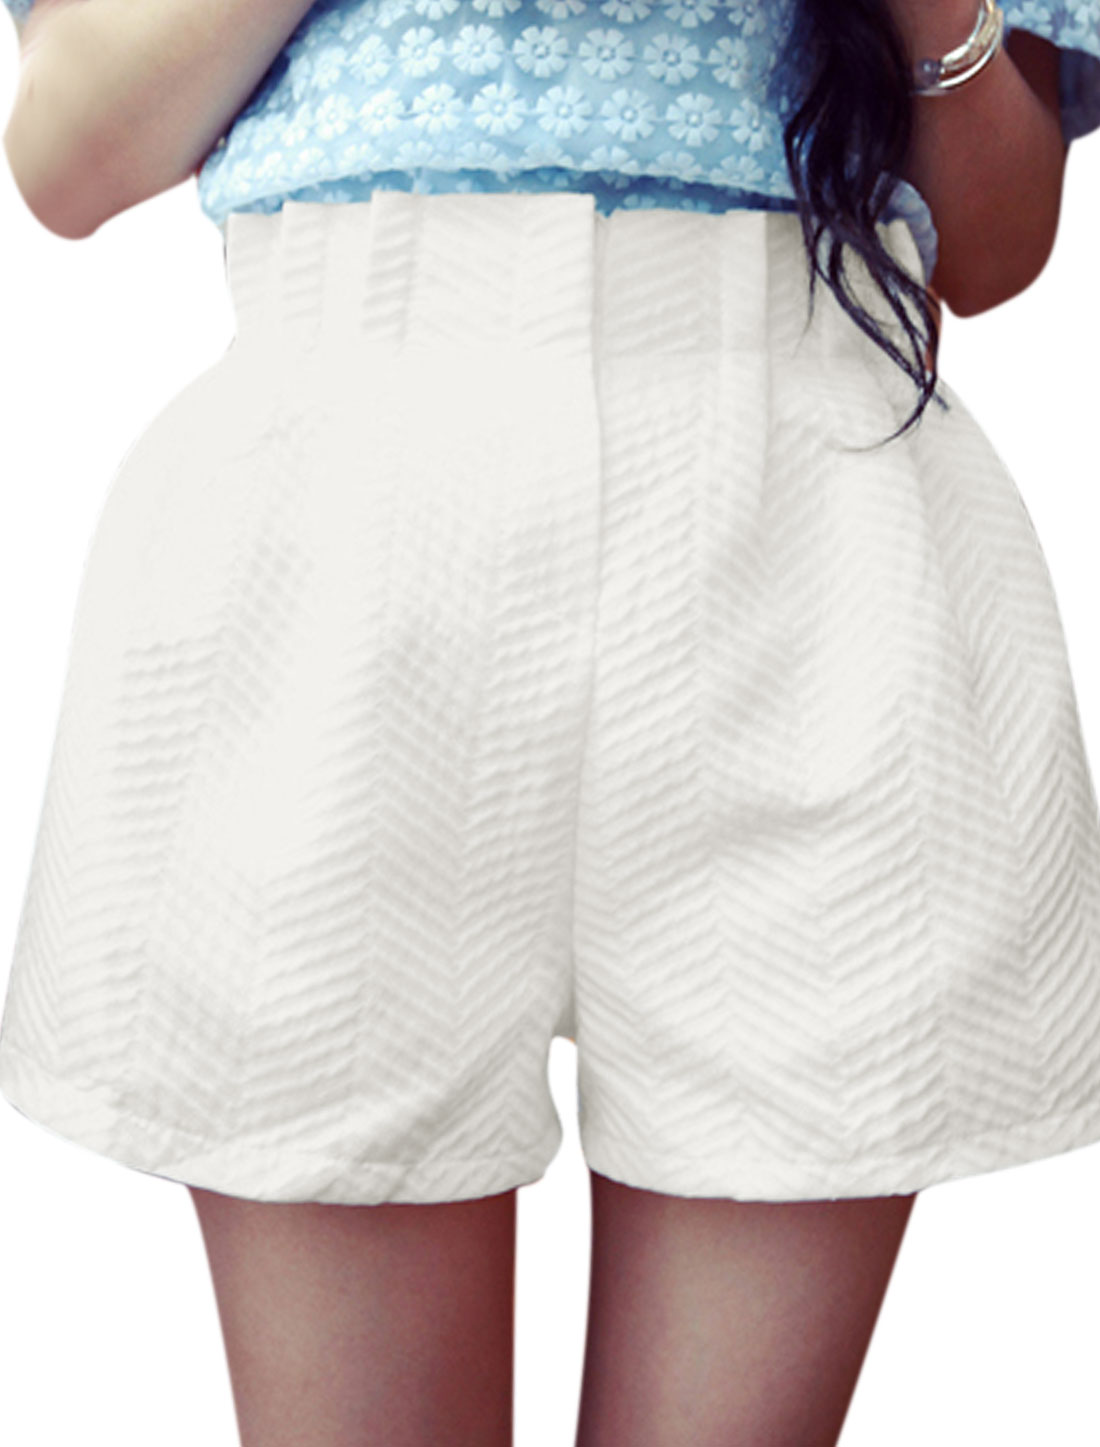 Women Conceal Placket Zigzag Textured Design Chic NEW Shorts White XS